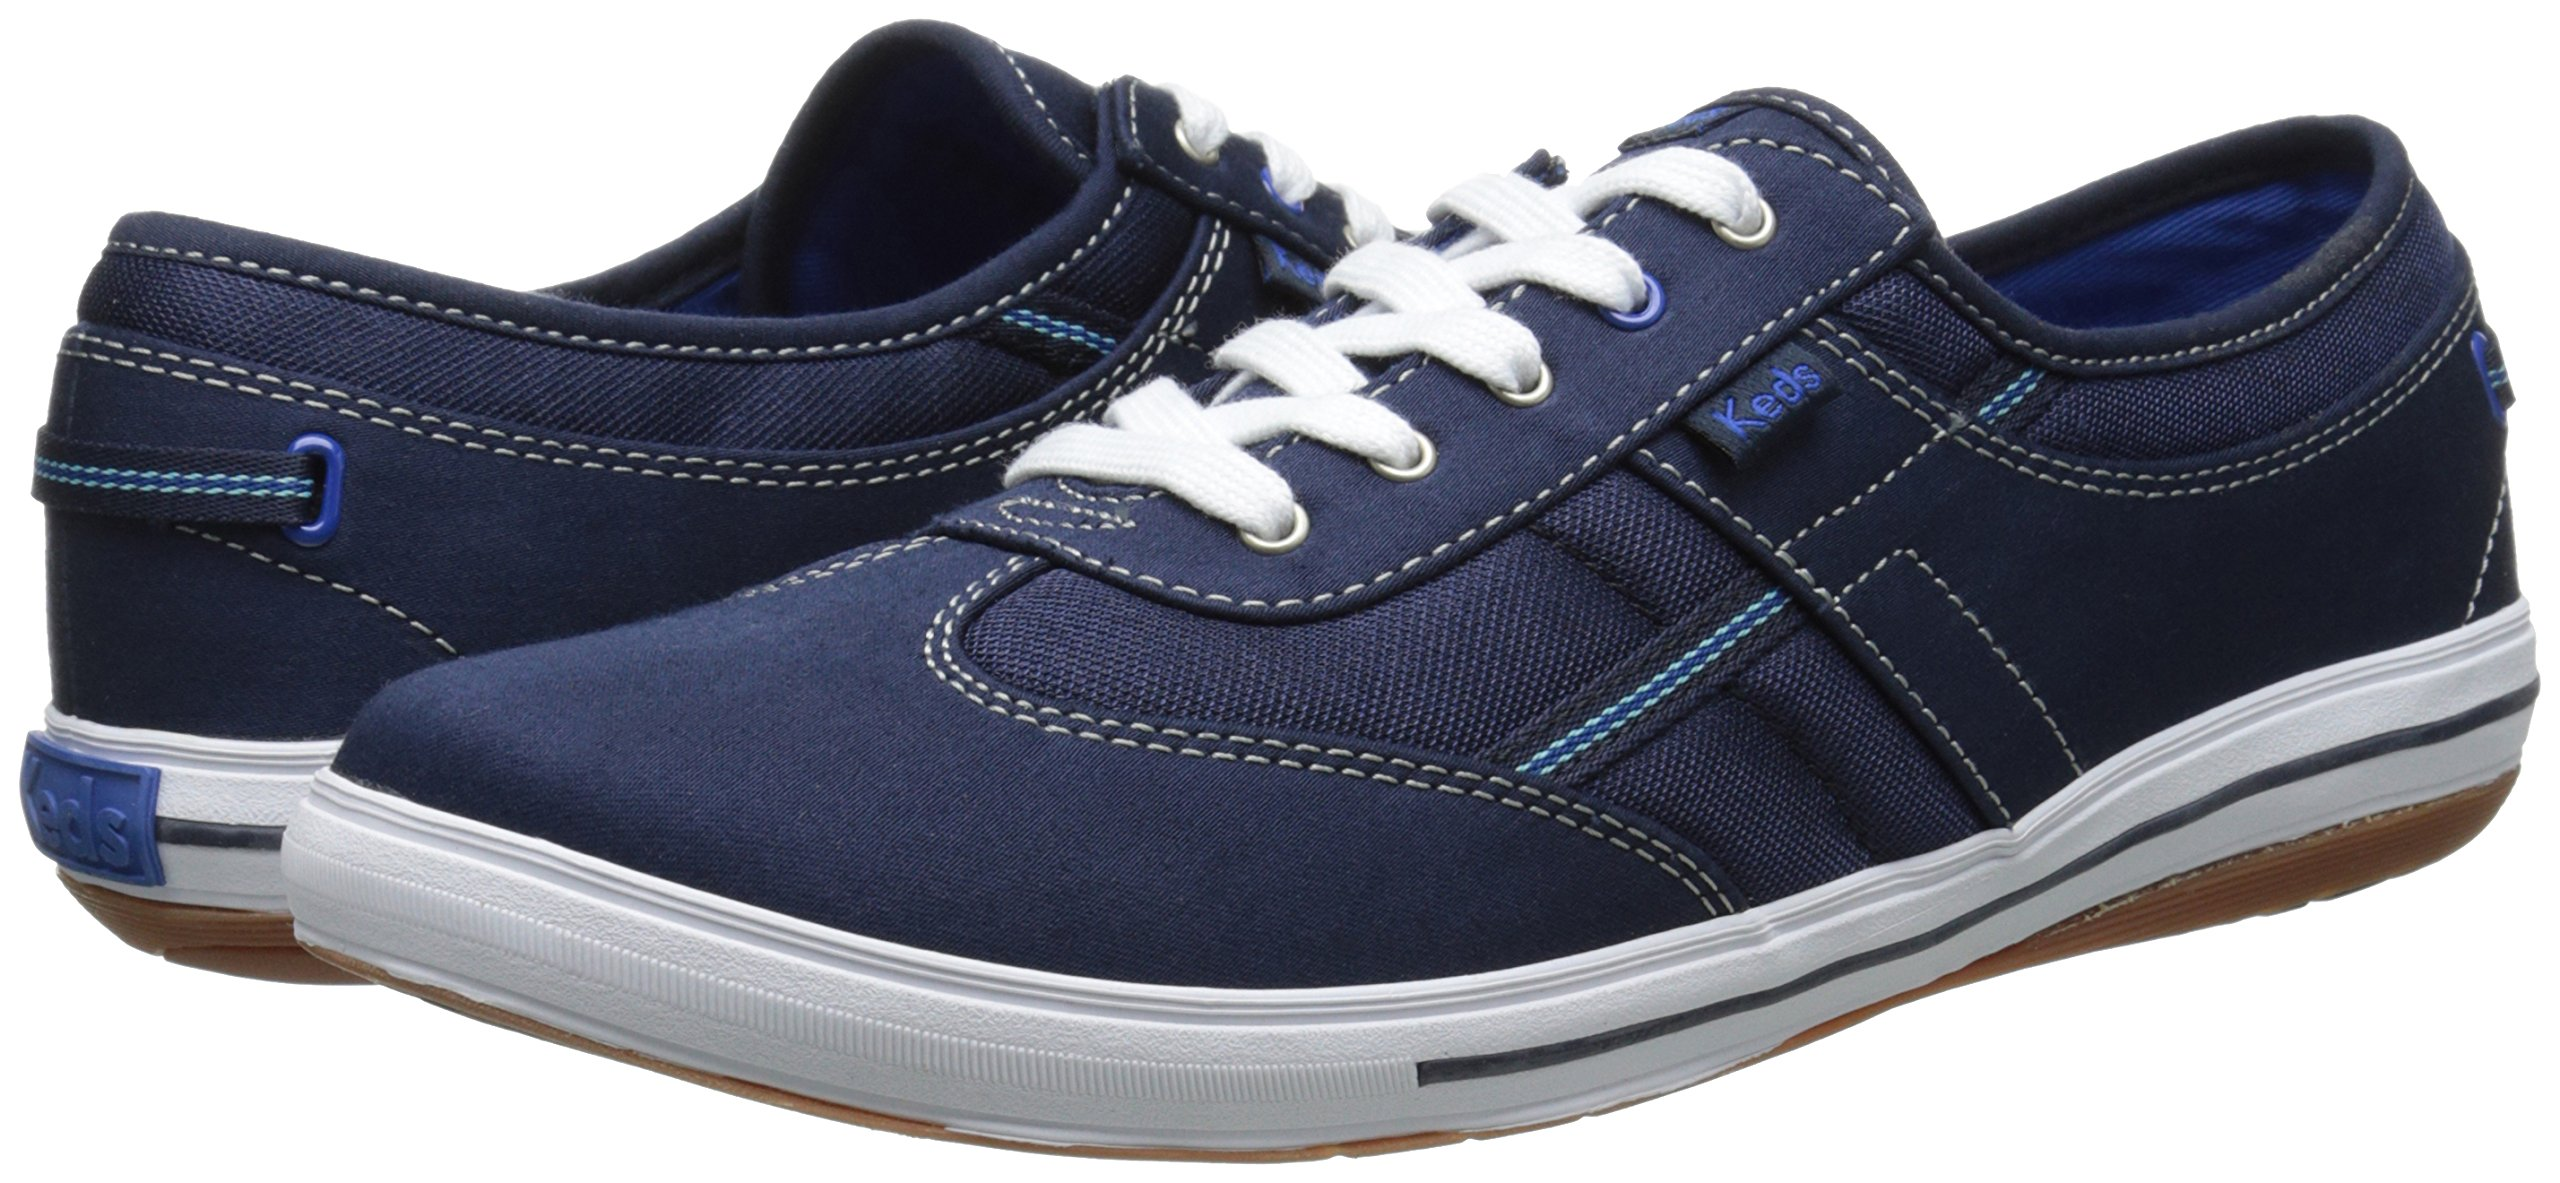 Keds Women's Craze T-Toe Twill Sneaker, Peacoat Navy, 10 M US by Keds (Image #6)